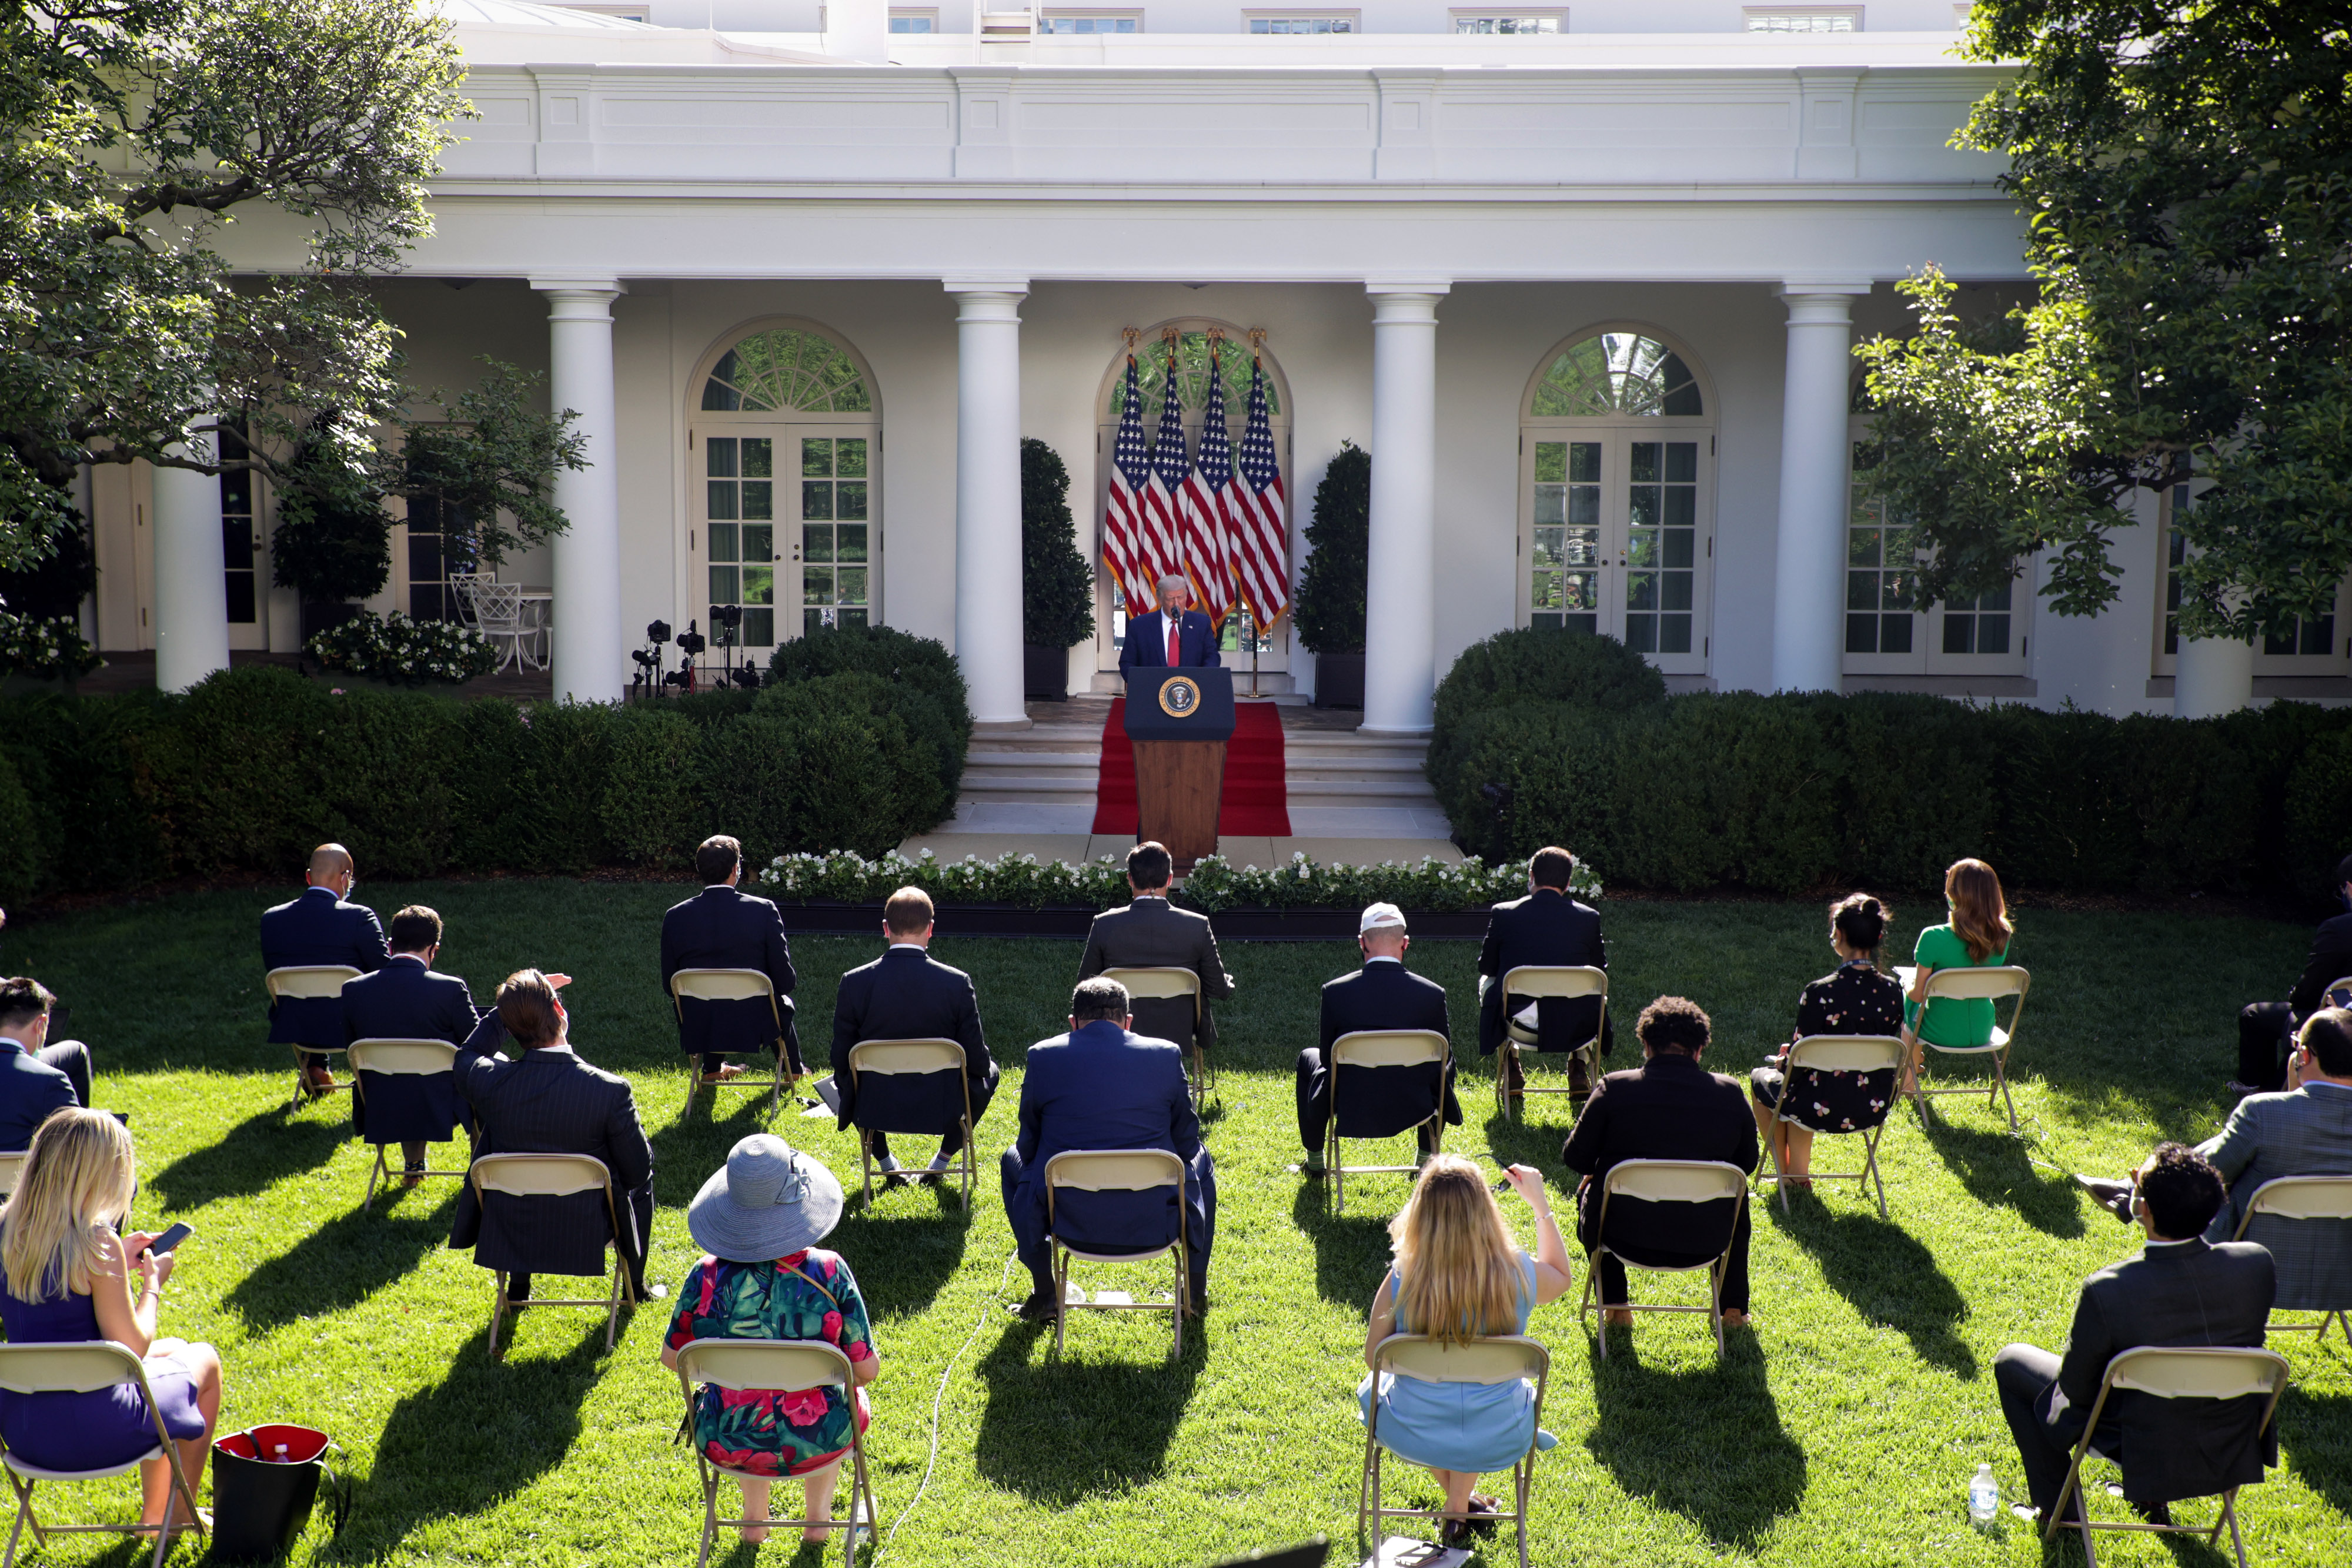 Trump Uses Rose Garden Event For Extended Campaign Like Attack On Biden The Washington Post